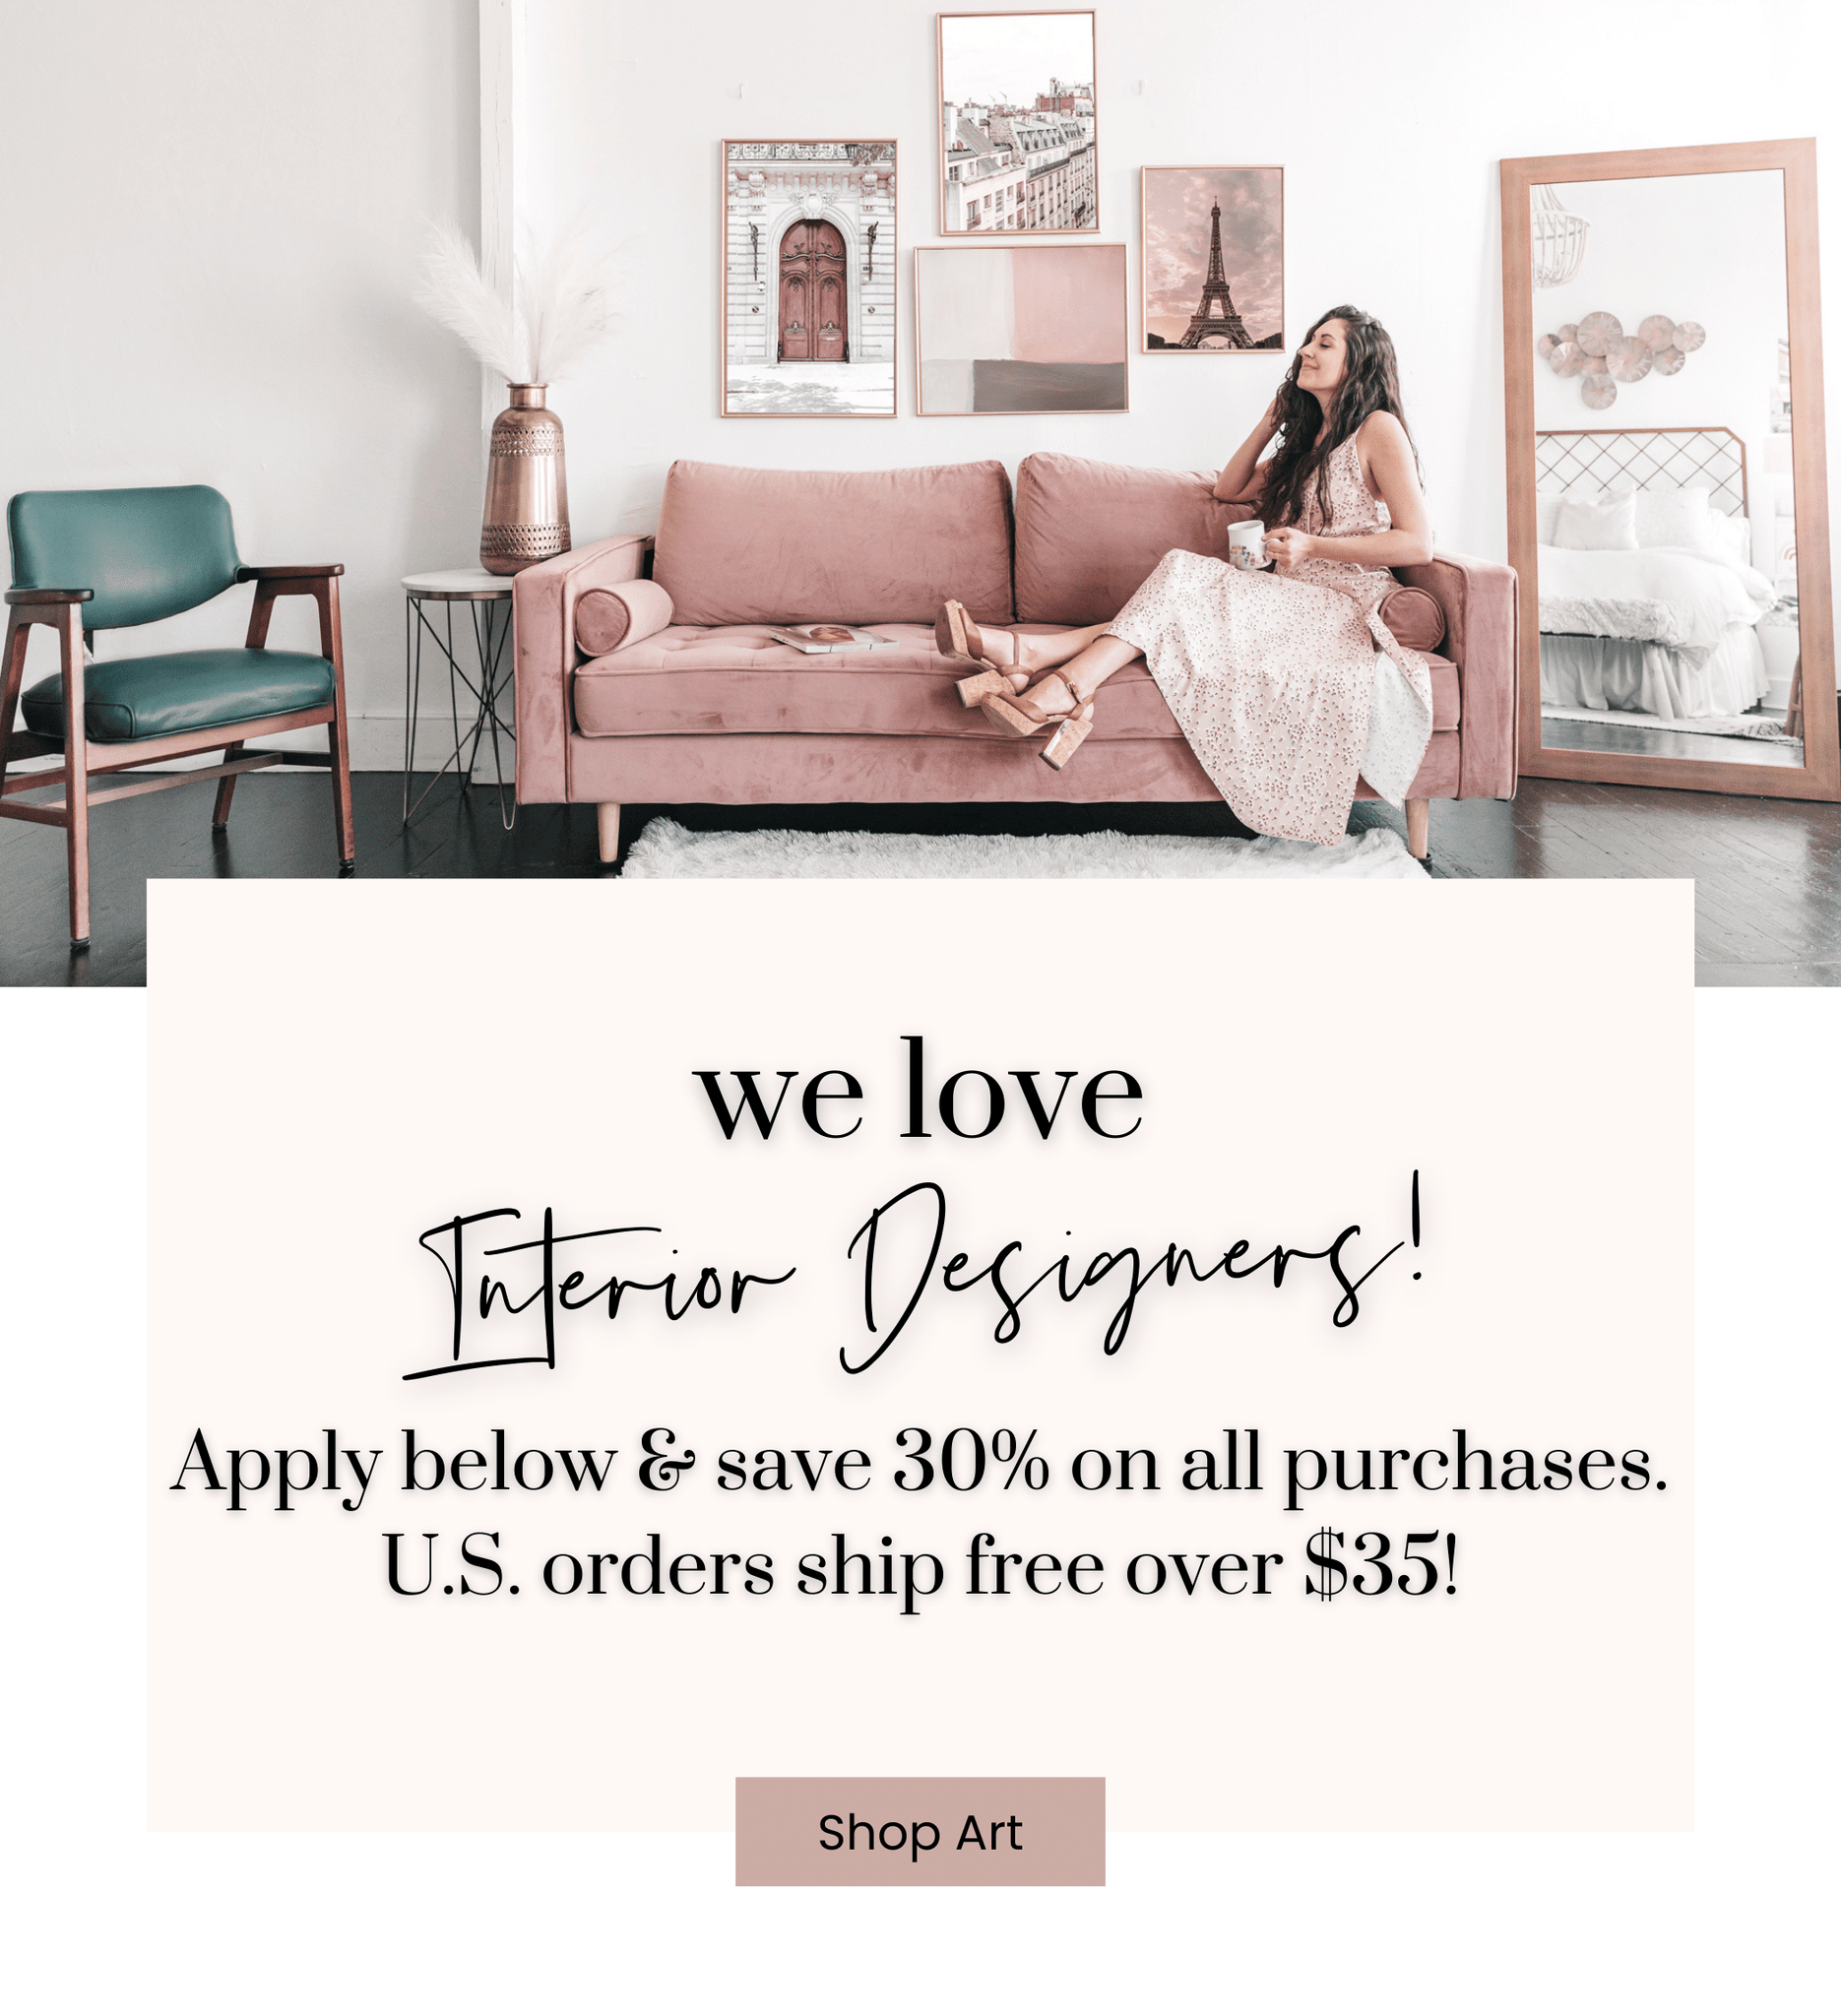 Trade Program - Interior designers save 30% on all purchases